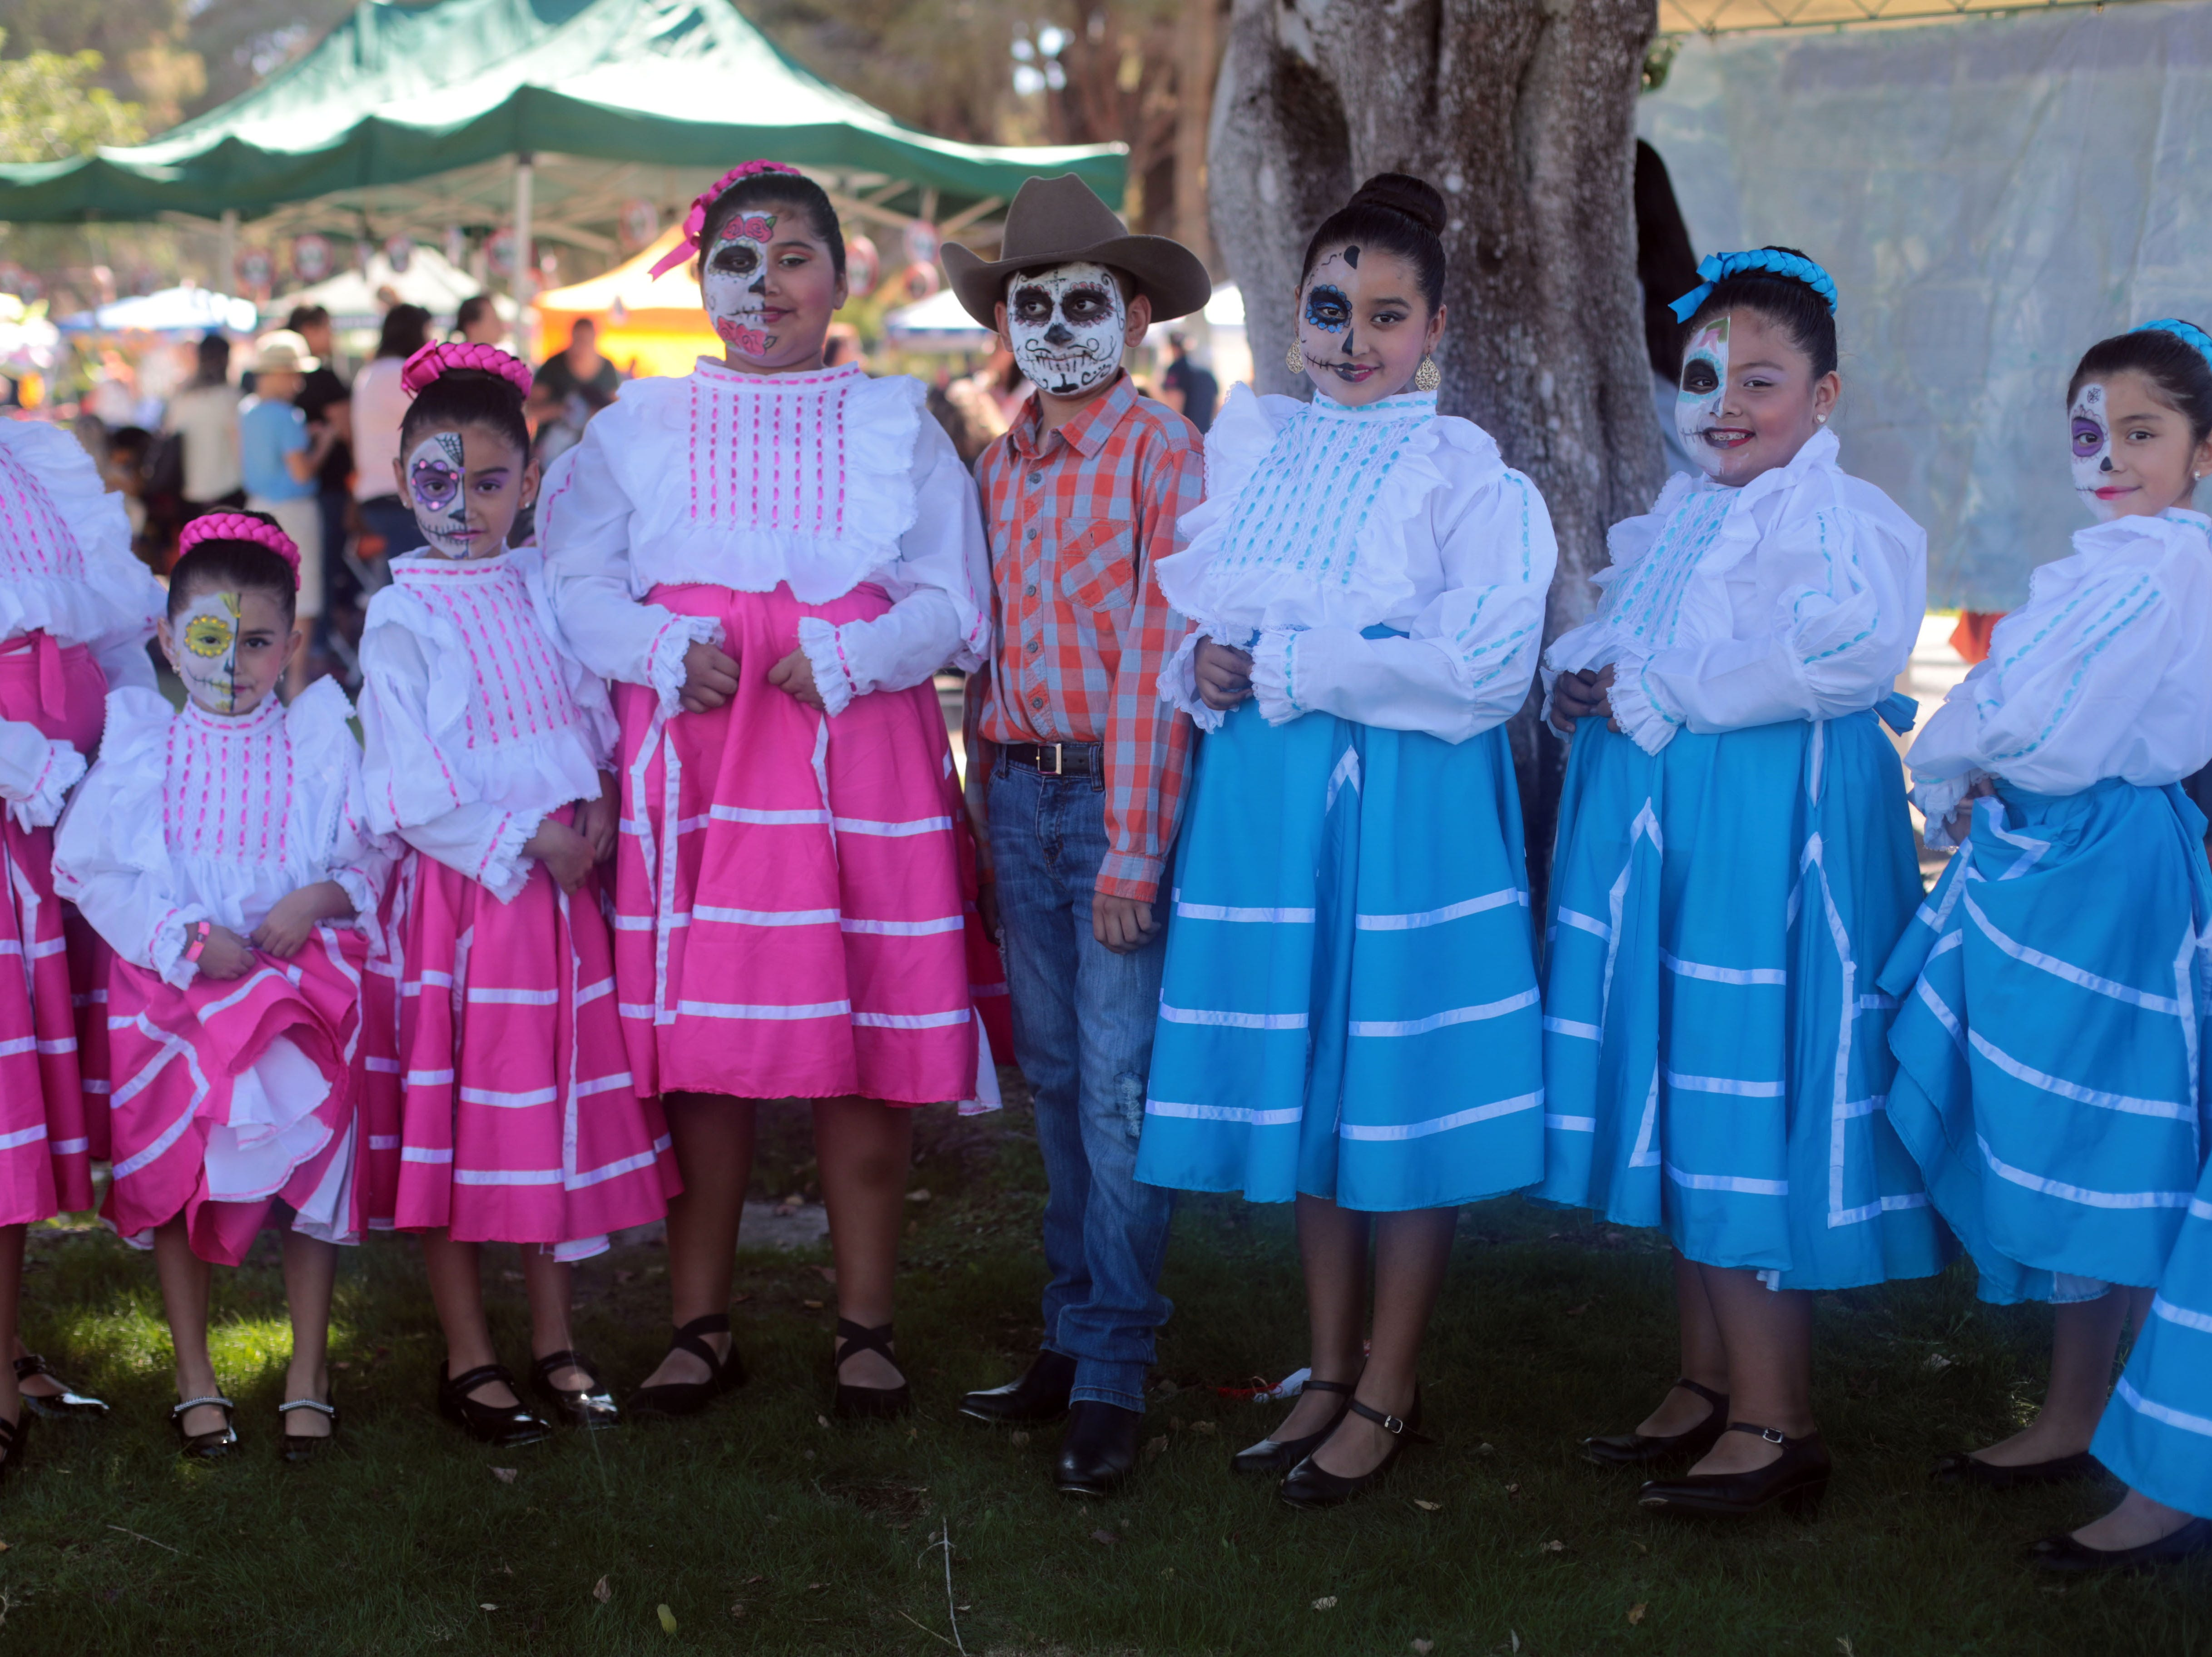 Folklorico dancers from Cathedral City at Cathedral City's annual Dia de los Muertos celebration at Desert Memorial Park cemetery on Saturday, October 27, 2018.